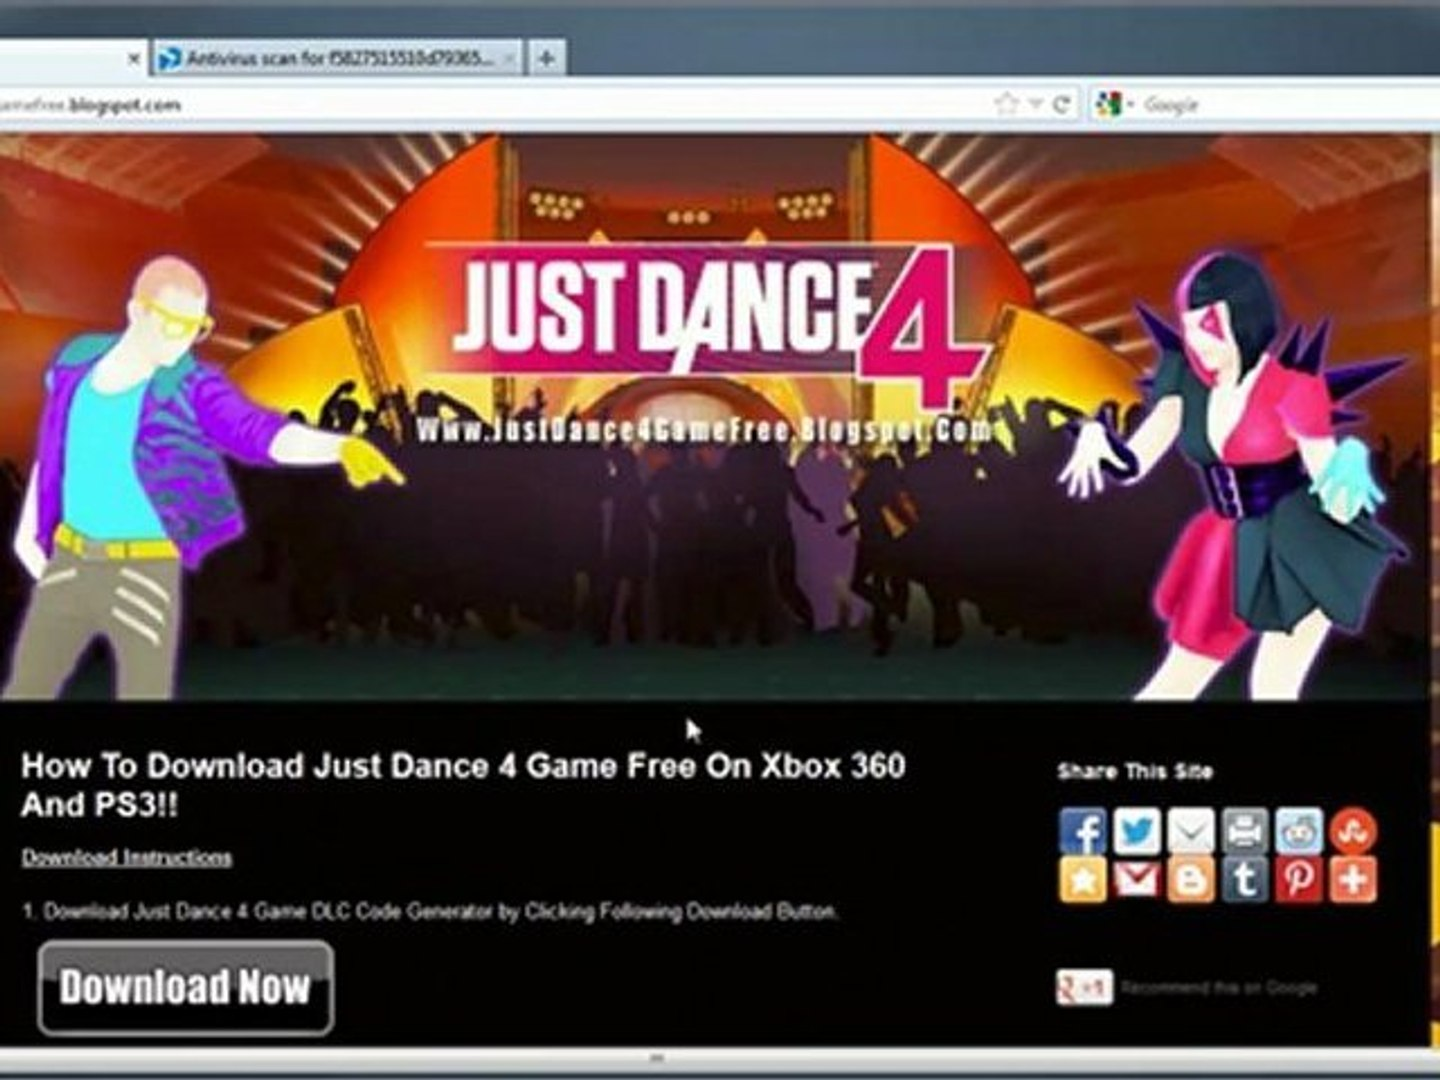 just dance 4 xbox 360 free download